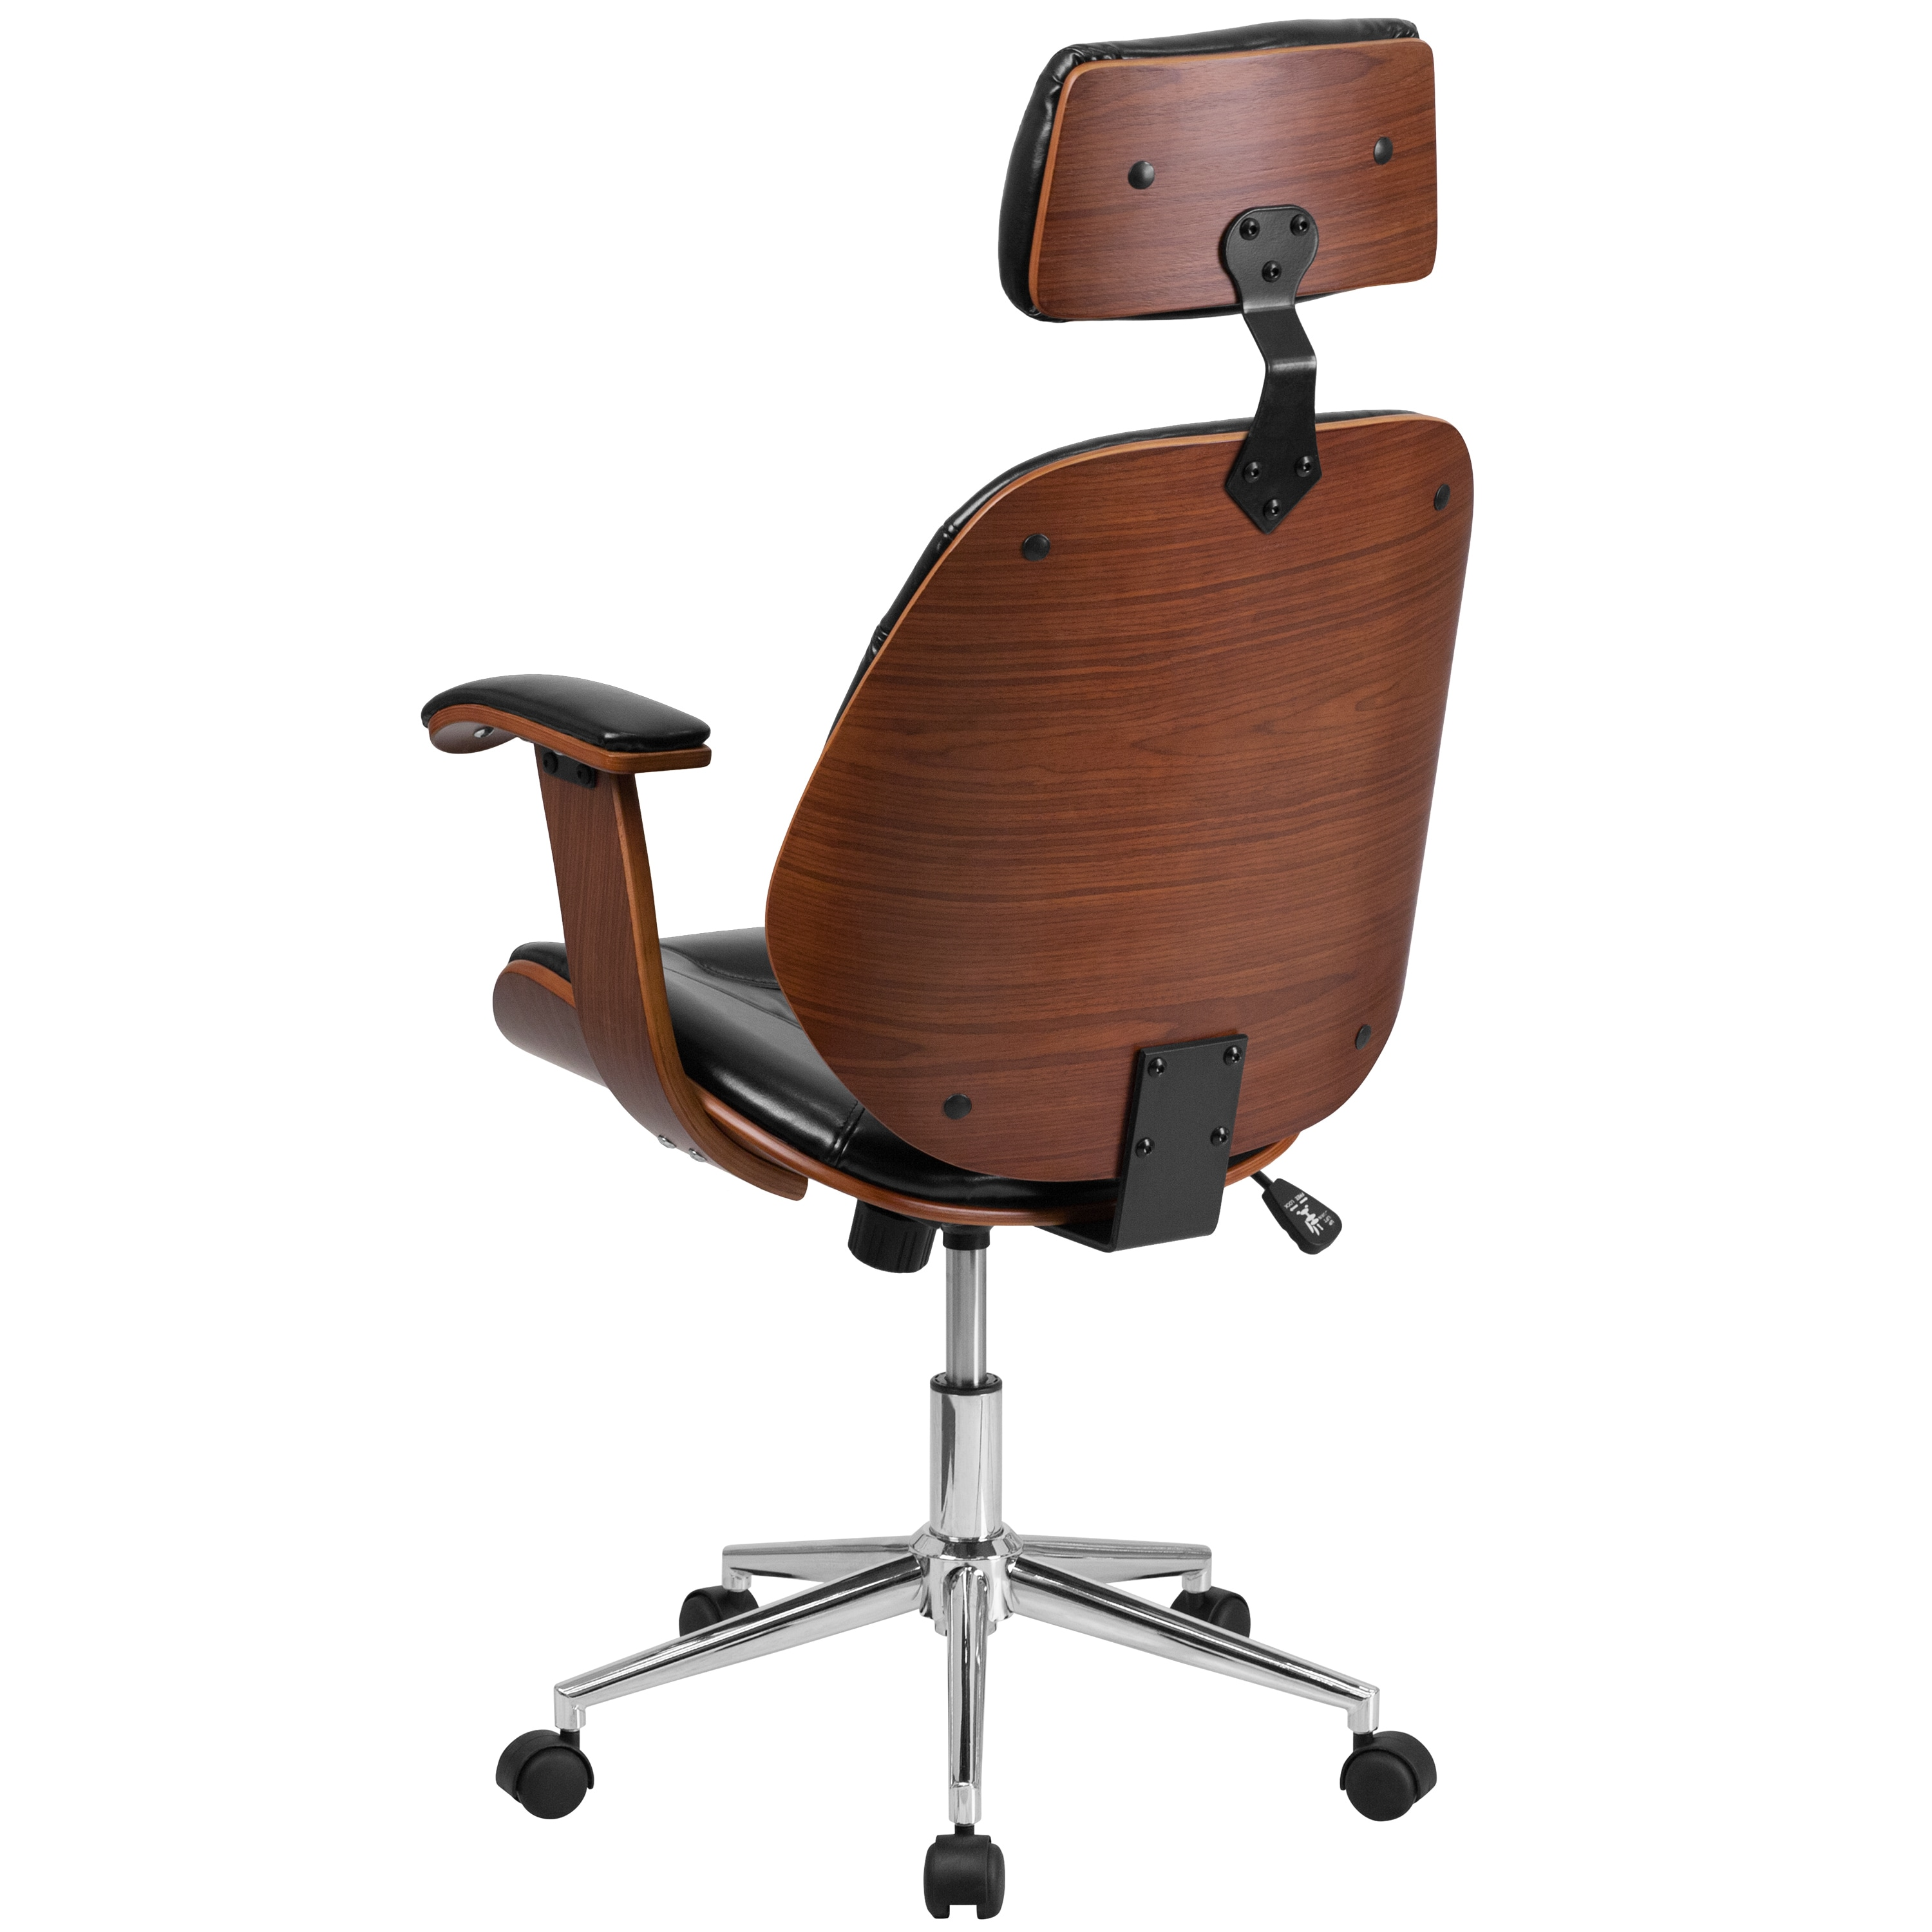 Arly Black Leather Wood Swivel Adjule Executive Office Chair With Headrest